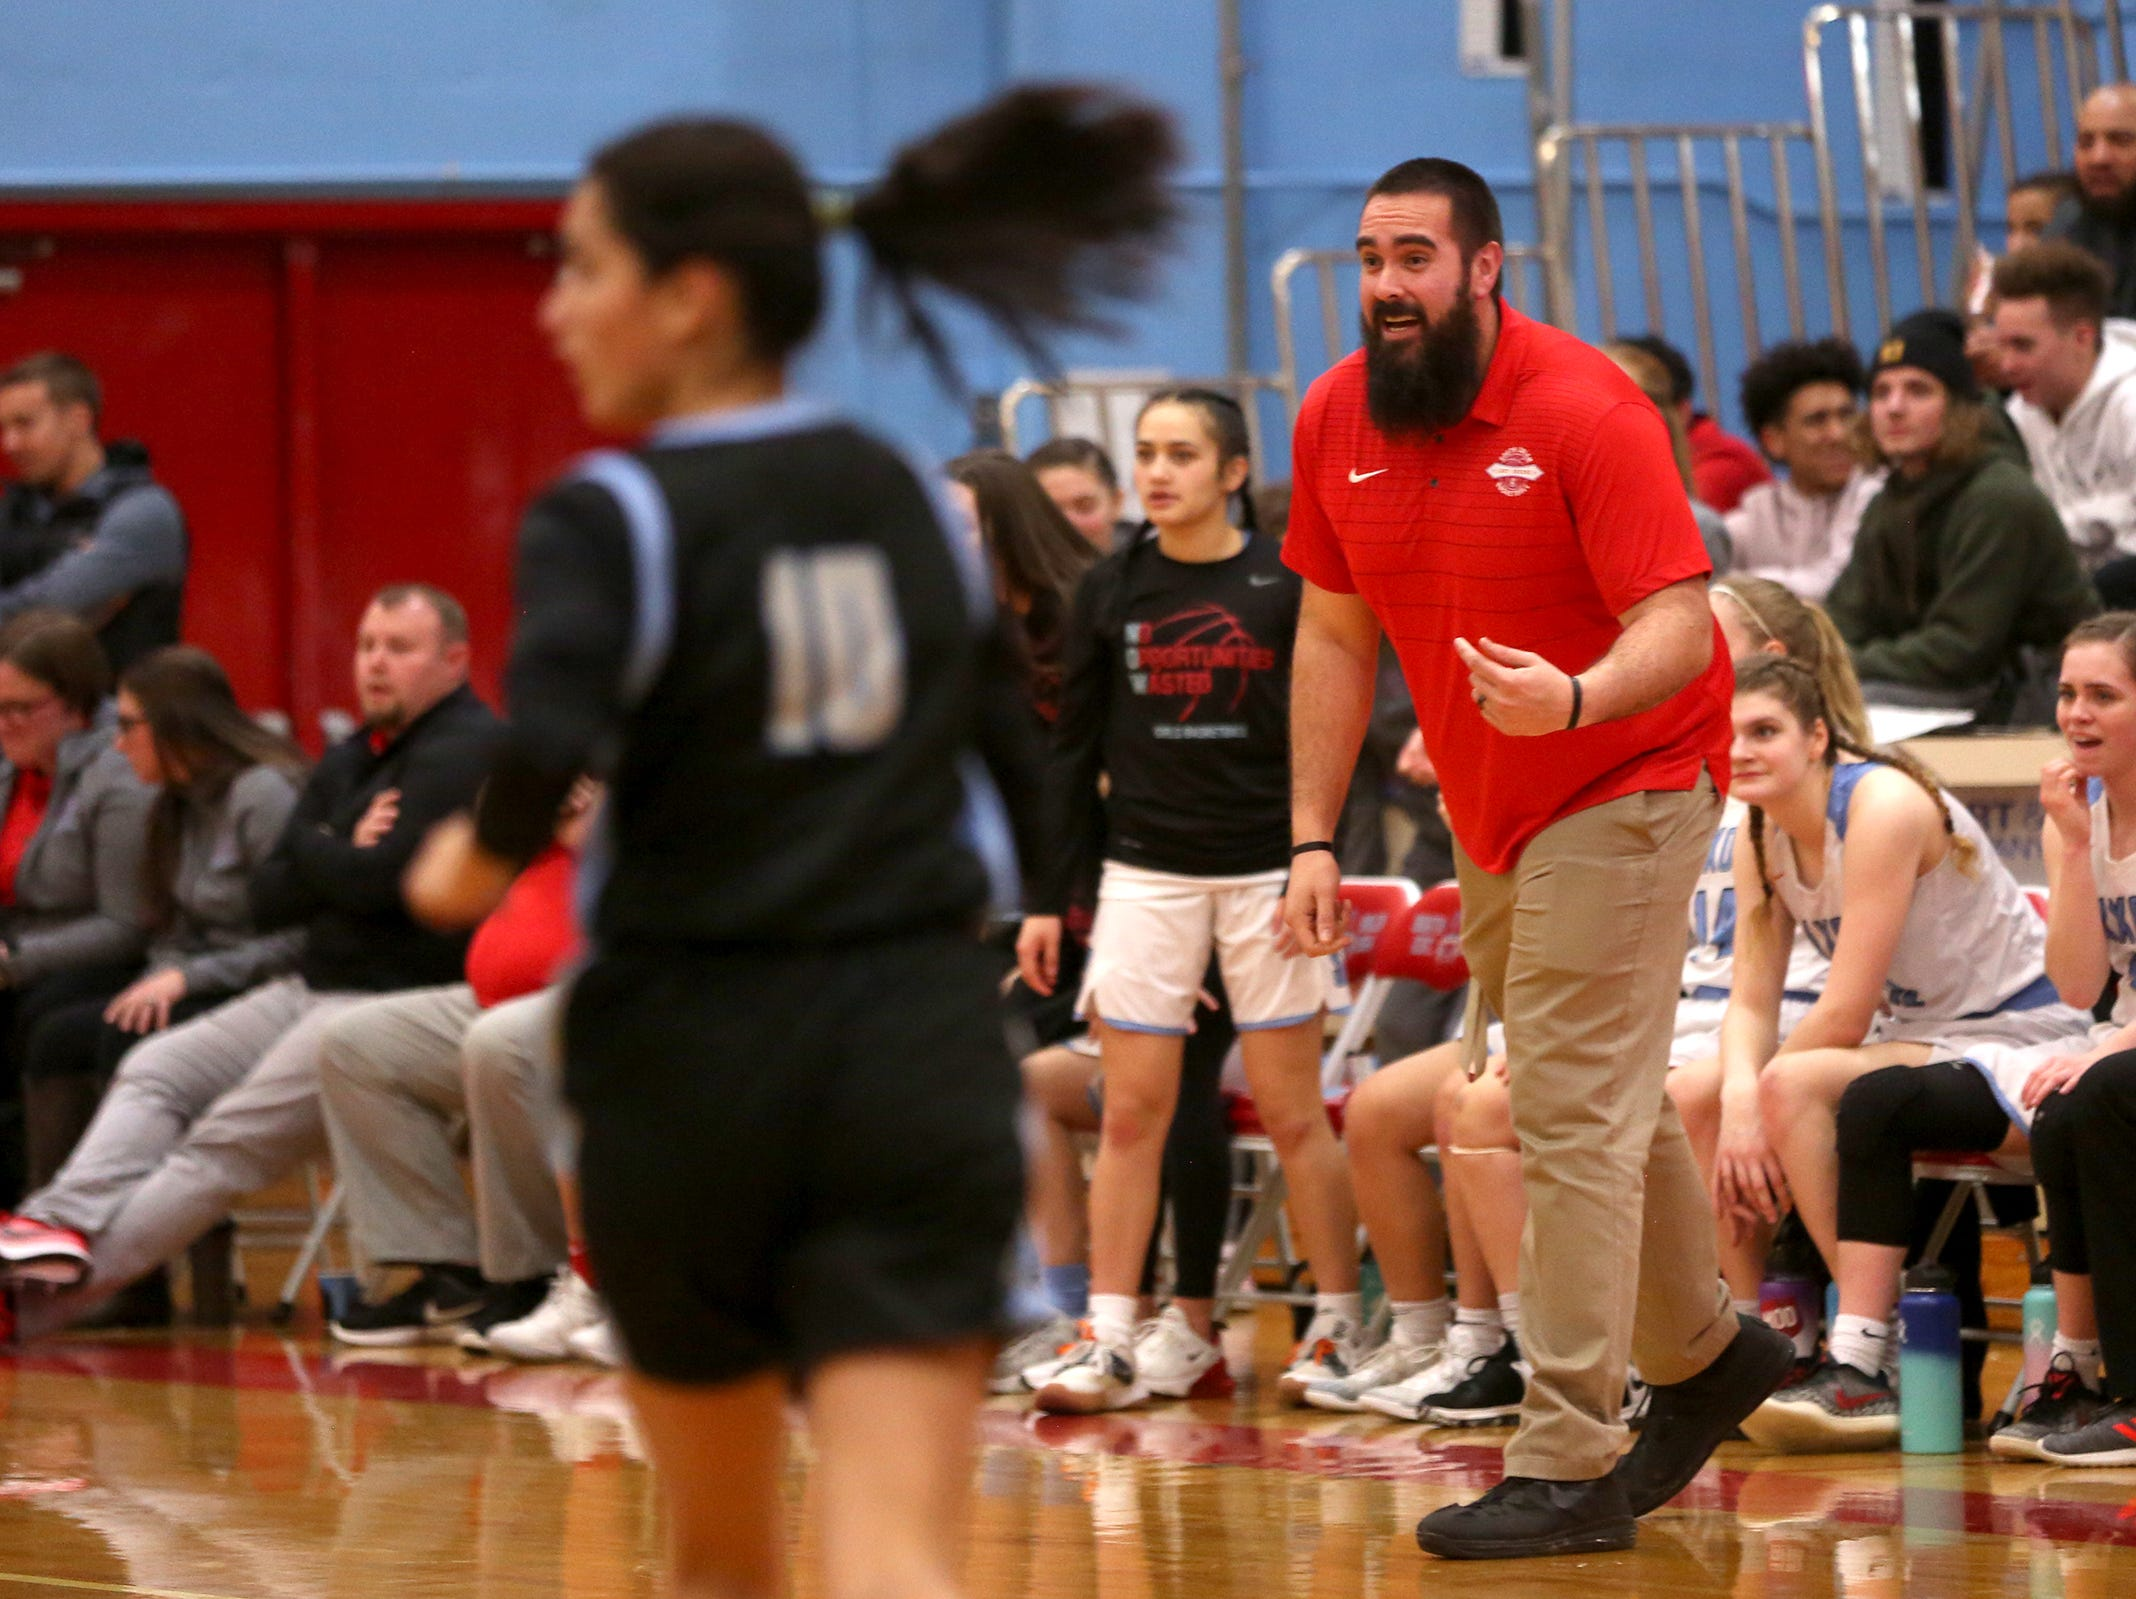 South Salem's head coach Adrian Lewis calls out a play during the South Salem vs. Mountainside girls basketball OSAA playoff game in Salem on Thursday, Feb. 28, 2019.